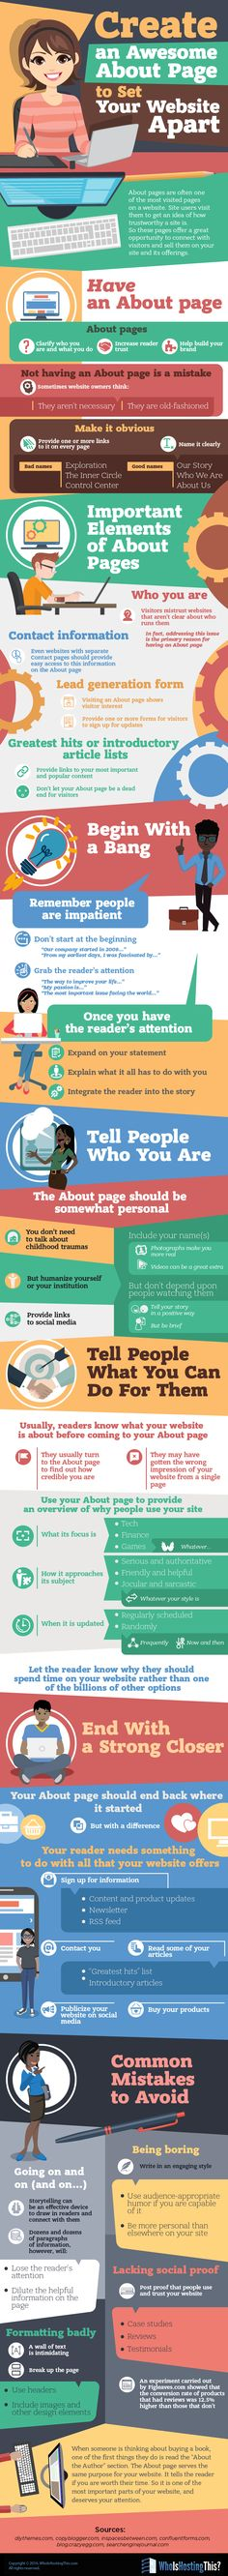 Create an Awesome About Page to Set Your Website Apart #Infographic #Website